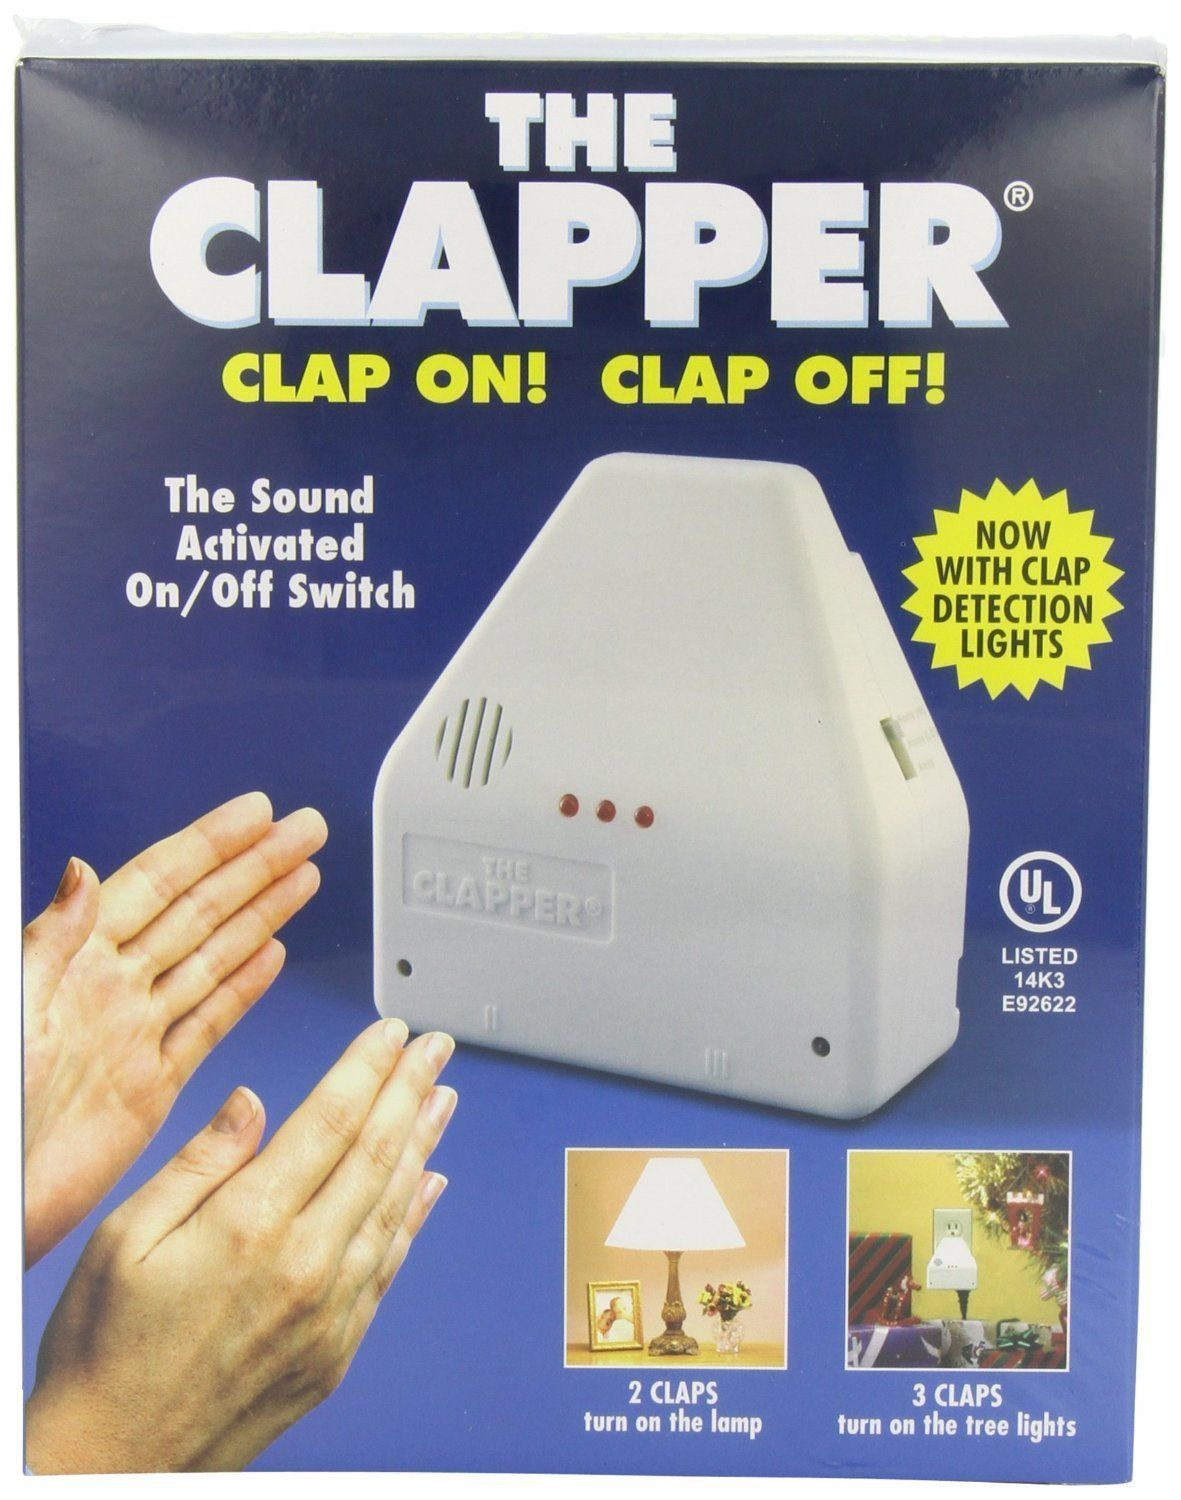 High Quality The Original Clapper Sound Activated On / Off Switch, Clap On! Clap Off!    Night Lights   Amazon.com Nice Look